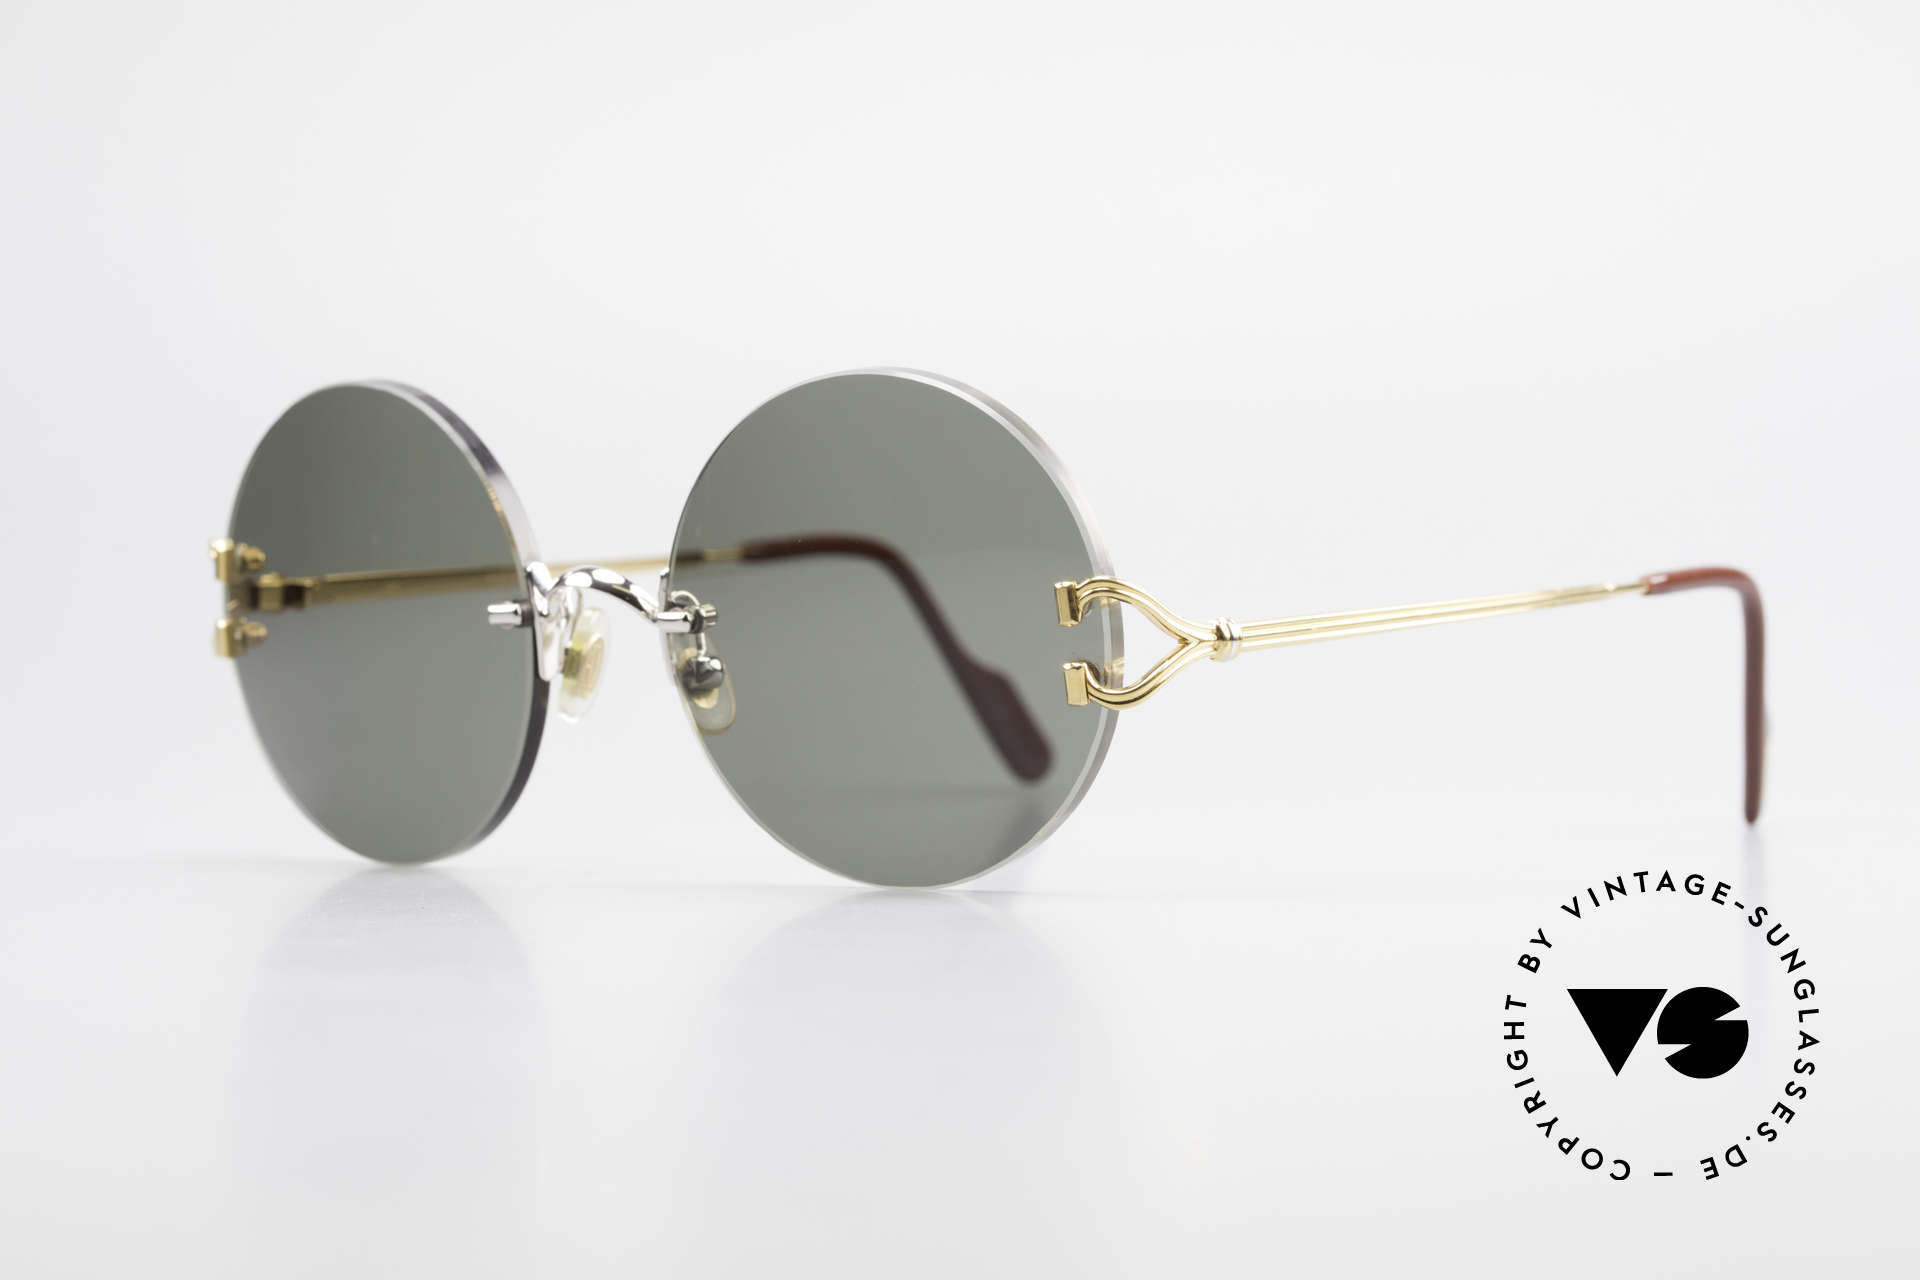 Cartier Madison Round Customized Sunglasses, 2nd hand model, but in a mint condition + orig. box, Made for Men and Women